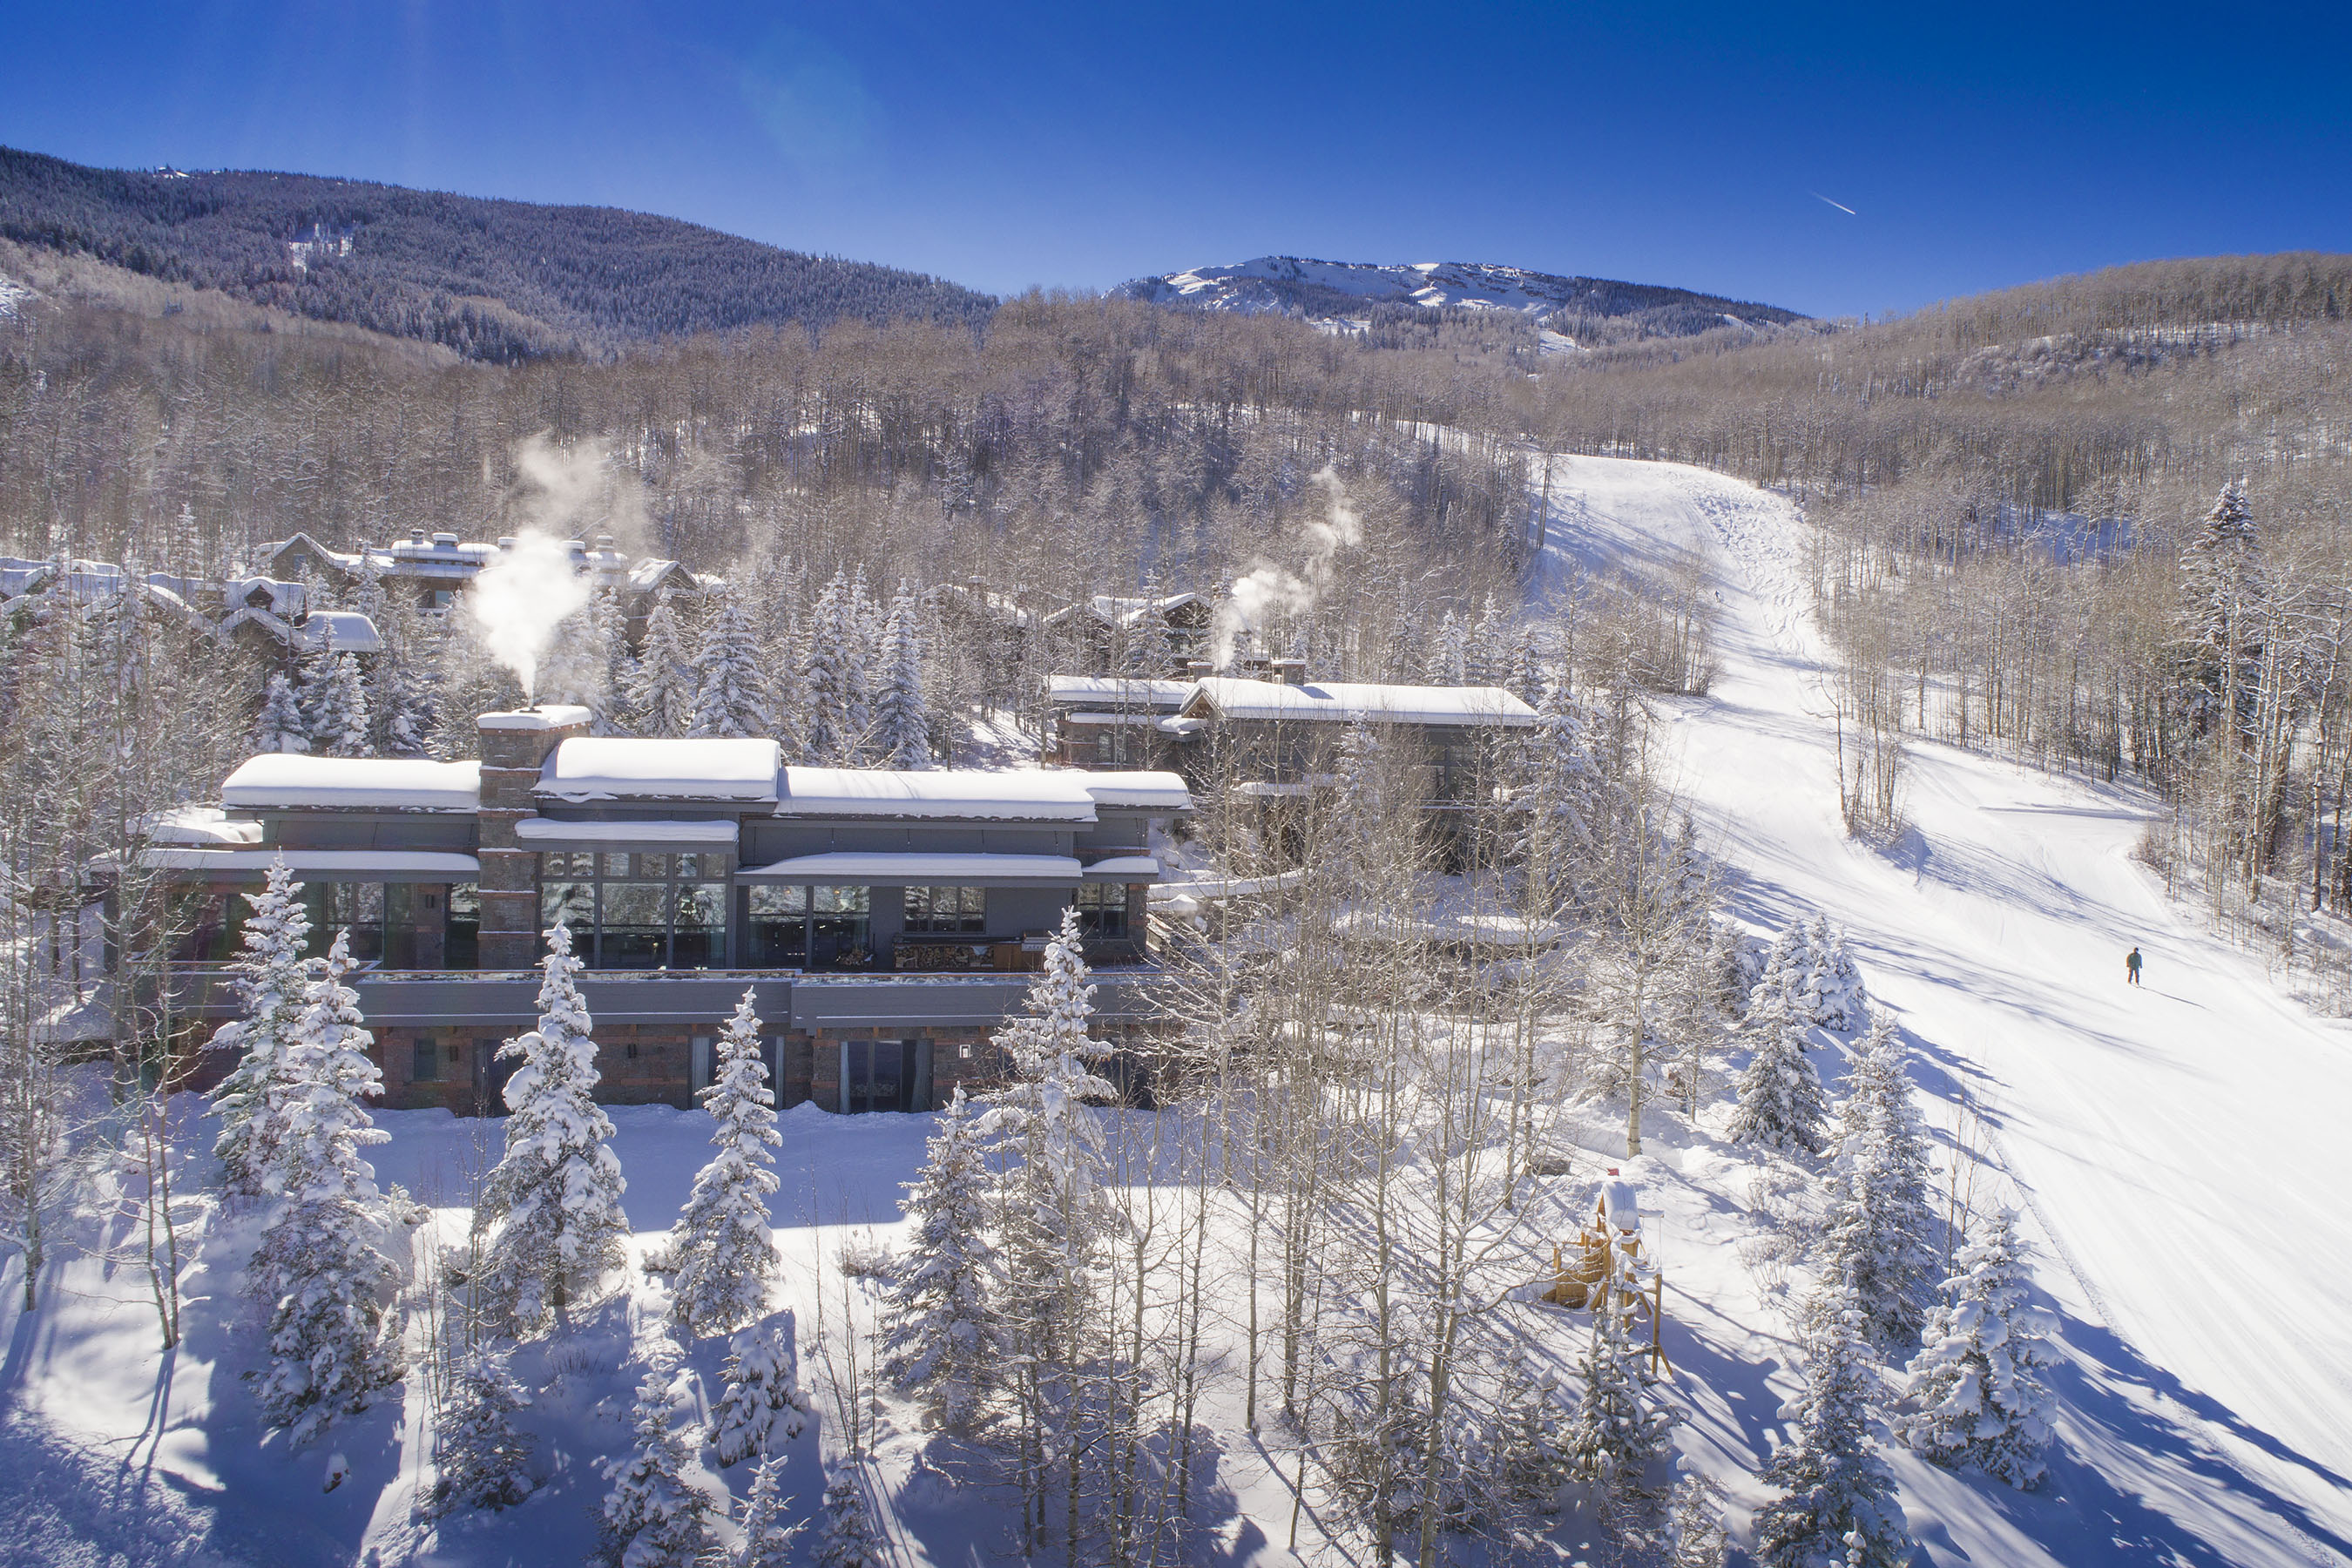 Single Family Home for Sale at Slopeside Estate 183 E. Fork Lane Snowmass Village, Colorado, 81615 United States